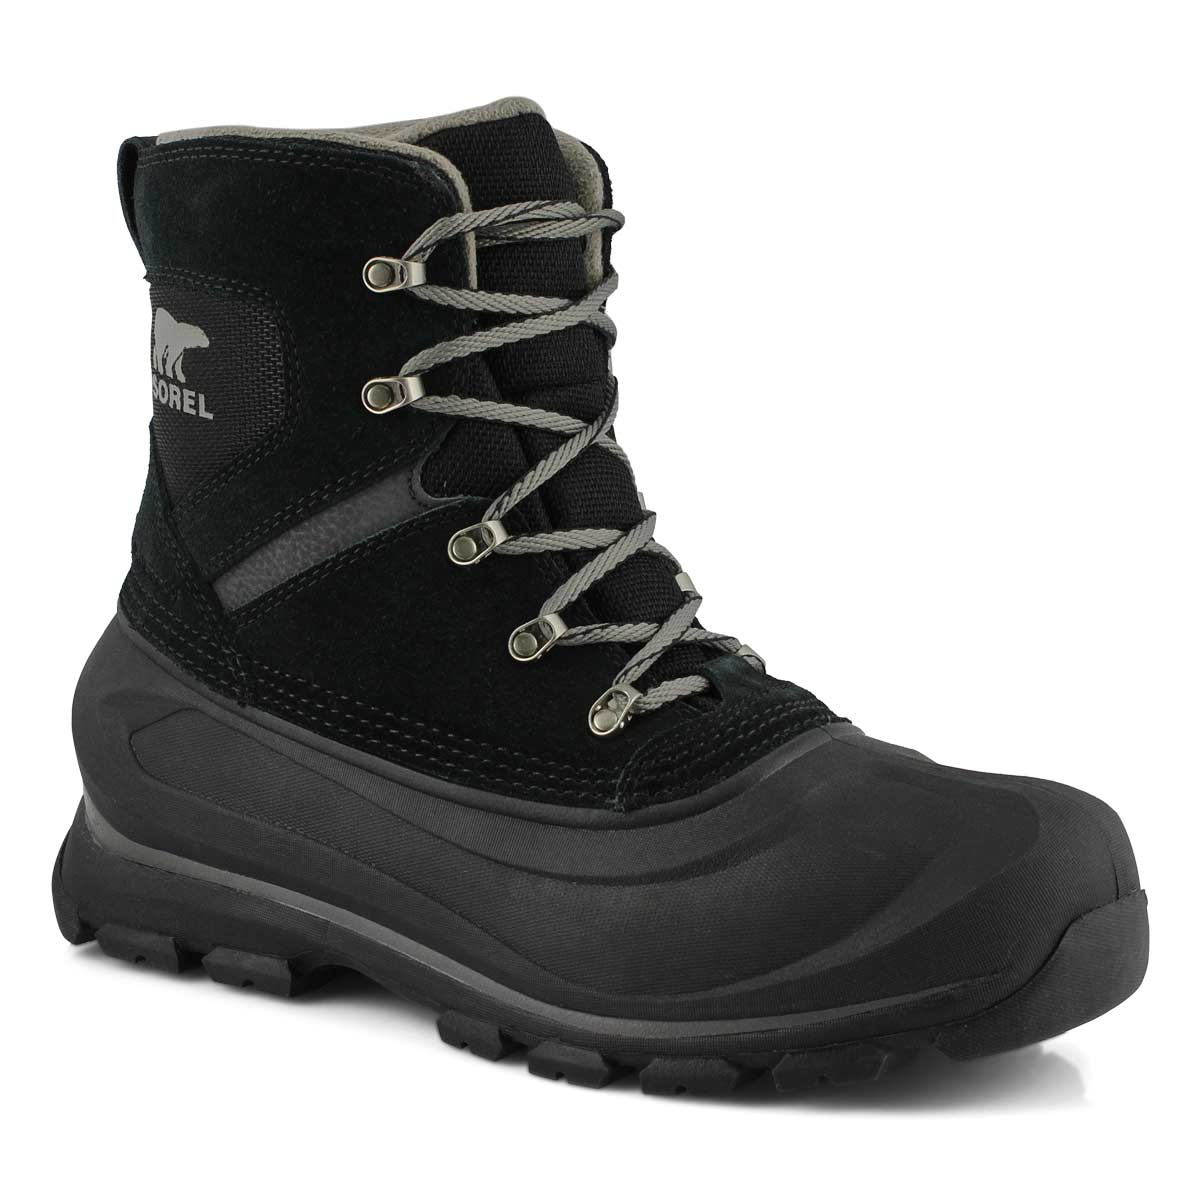 Mns Buxton Lace blk/qry wtpf winter boot